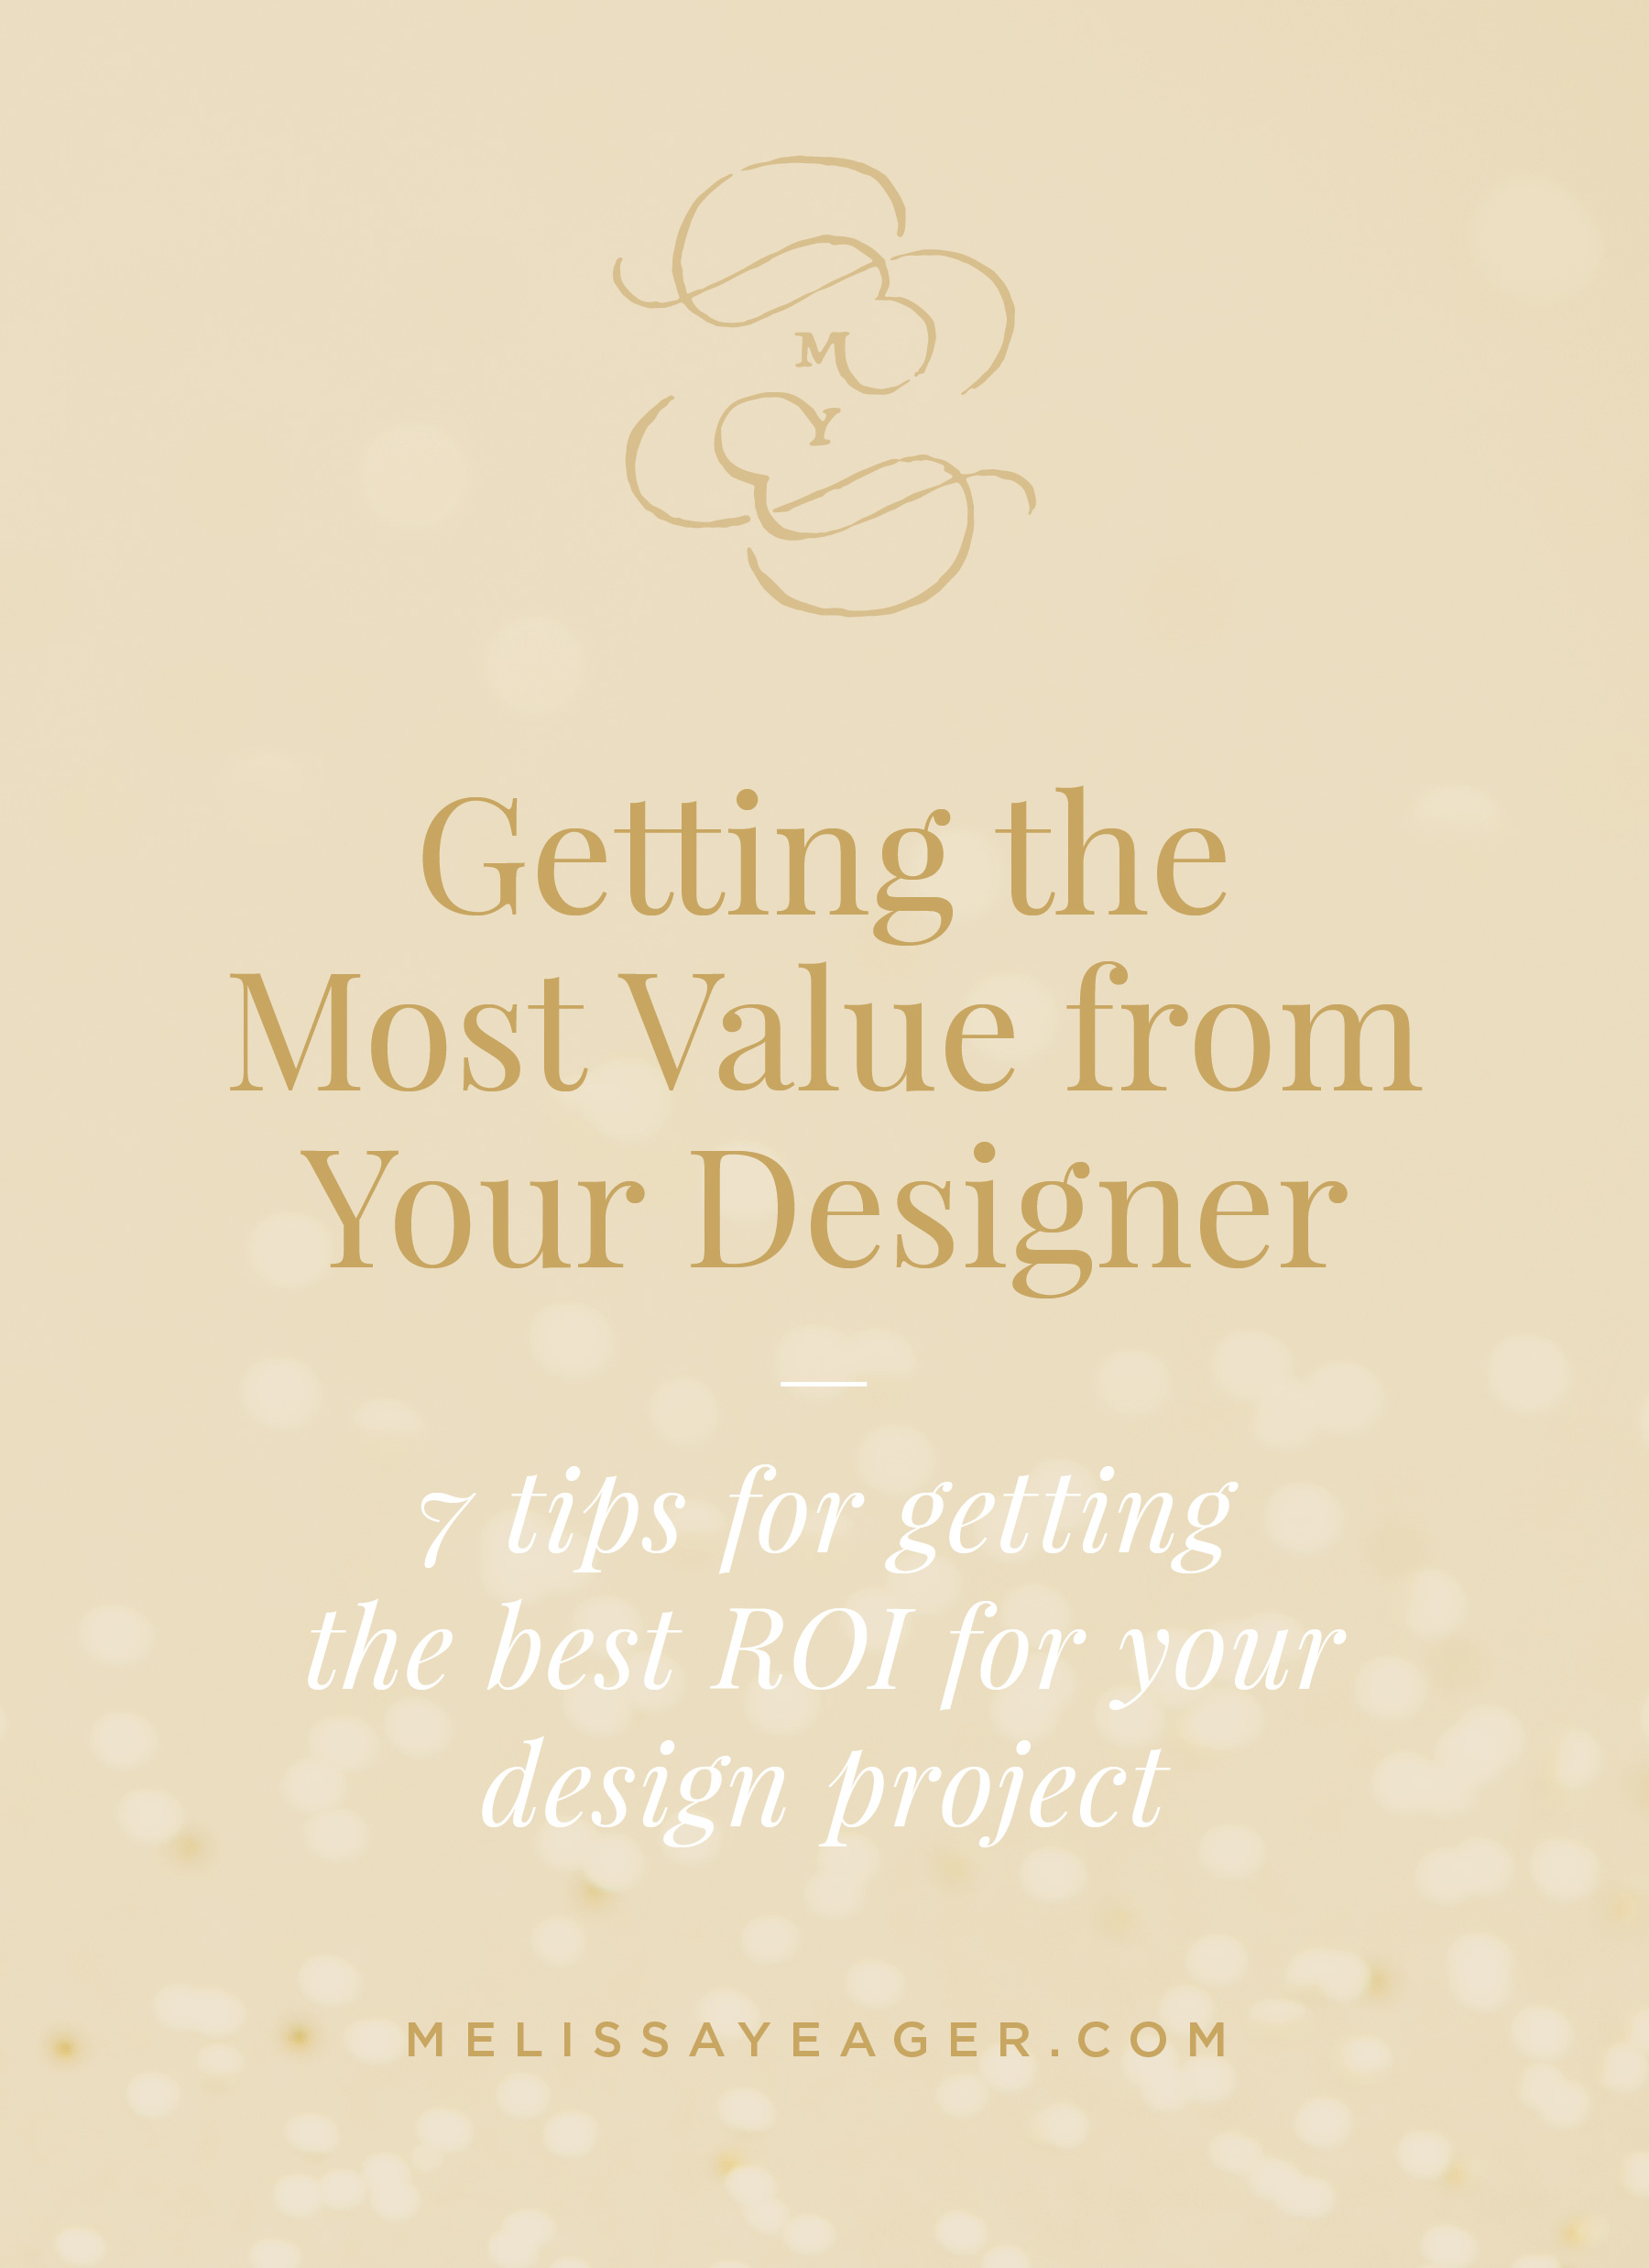 Getting the Most Value from Your Designer - 7 tips for getting the best ROI for your design project